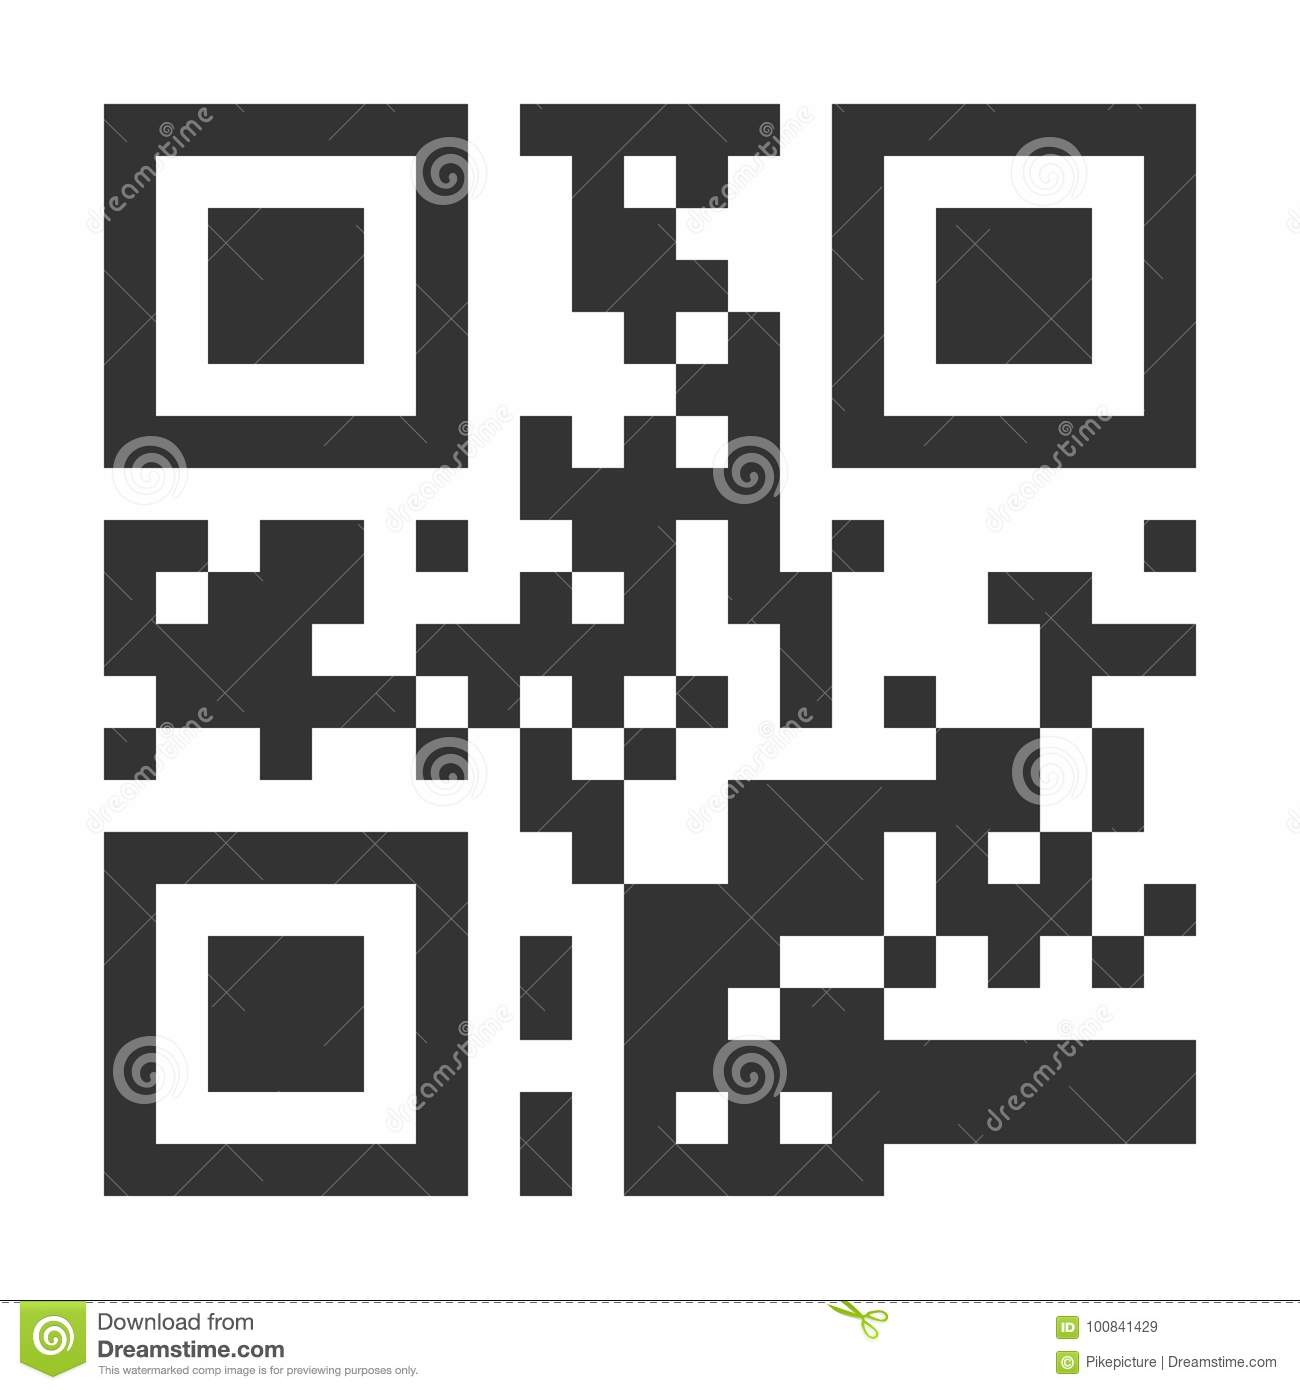 QR Code Vector  Hidden Text Or Url  Scanning Smartphone